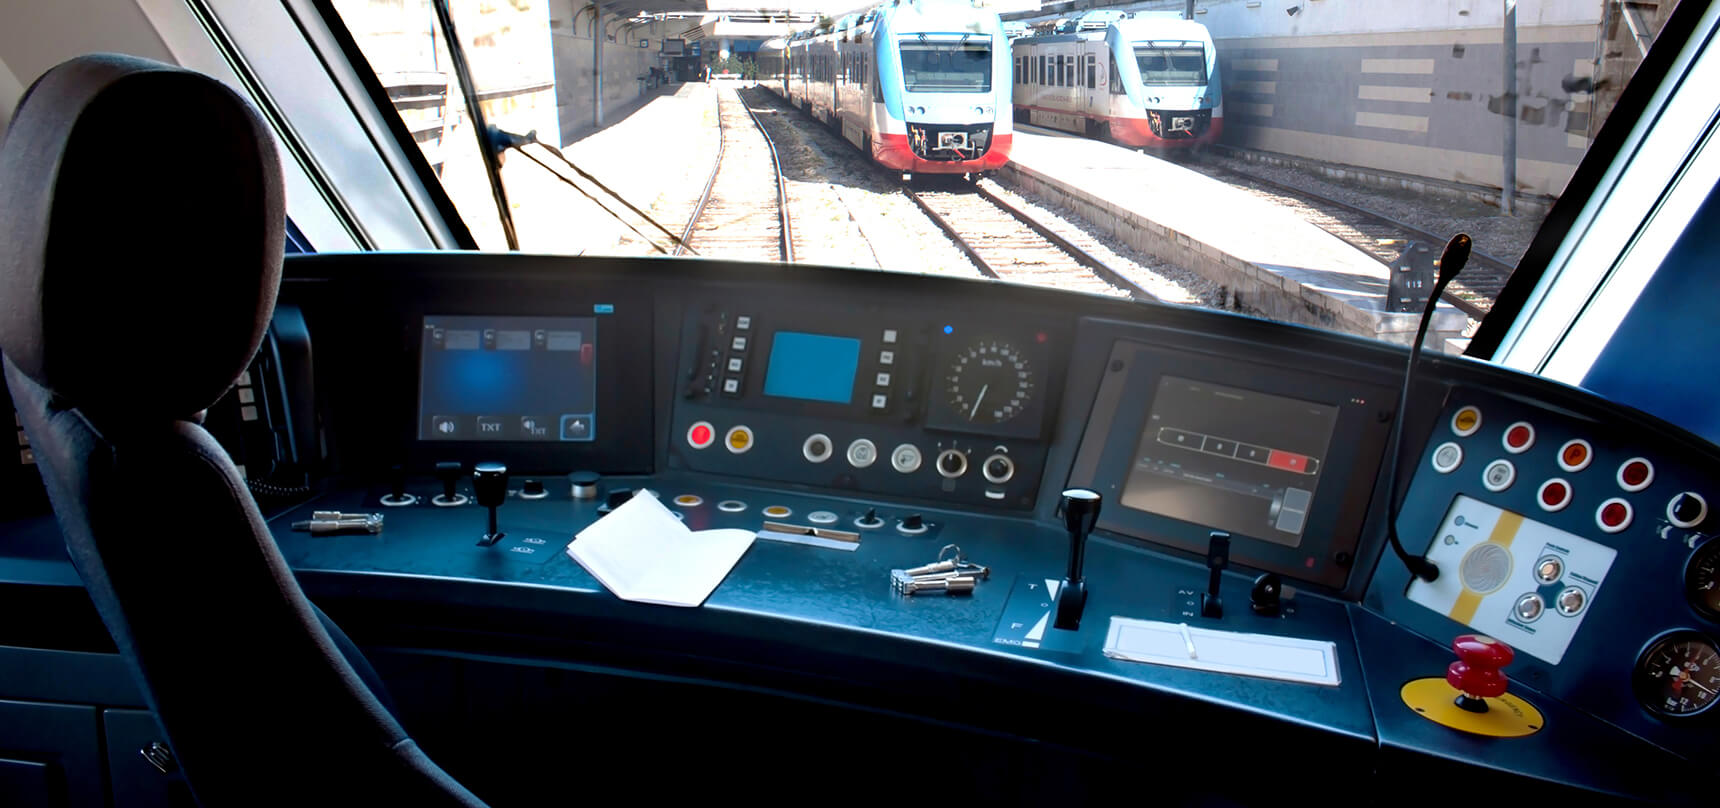 transportation industry train control panels and trains in the background